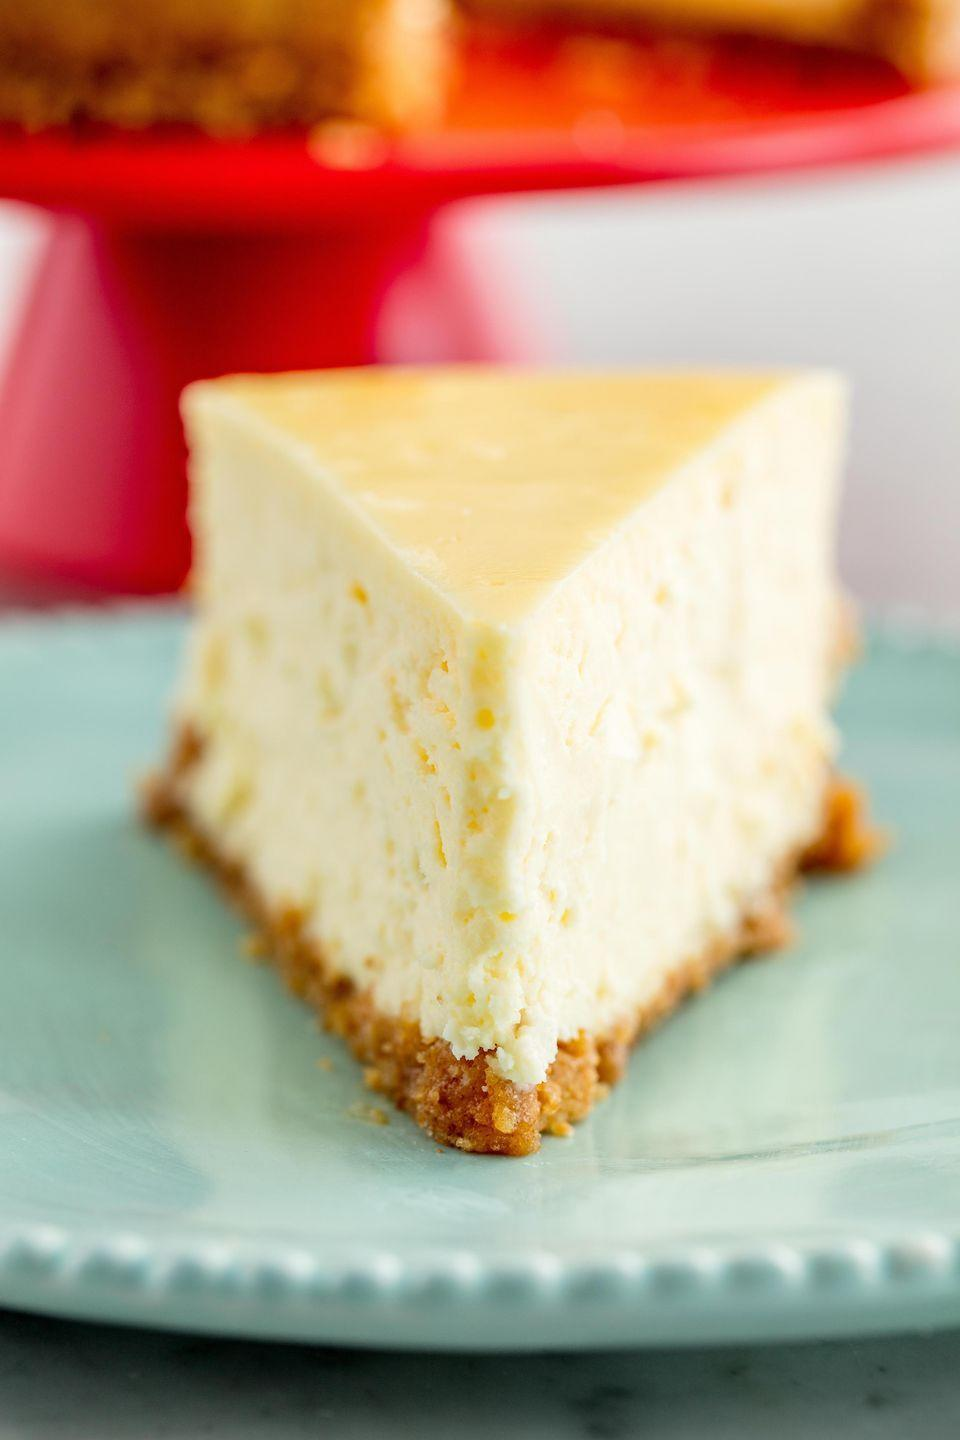 """<p>Nothing like a good ol' slice of New York cheesecake. </p><p>Get the recipe from <a href=""""https://www.delish.com/cooking/recipe-ideas/recipes/a58084/easy-classic-cheesecake-recipe/"""" rel=""""nofollow noopener"""" target=""""_blank"""" data-ylk=""""slk:Delish"""" class=""""link rapid-noclick-resp"""">Delish</a>.</p>"""